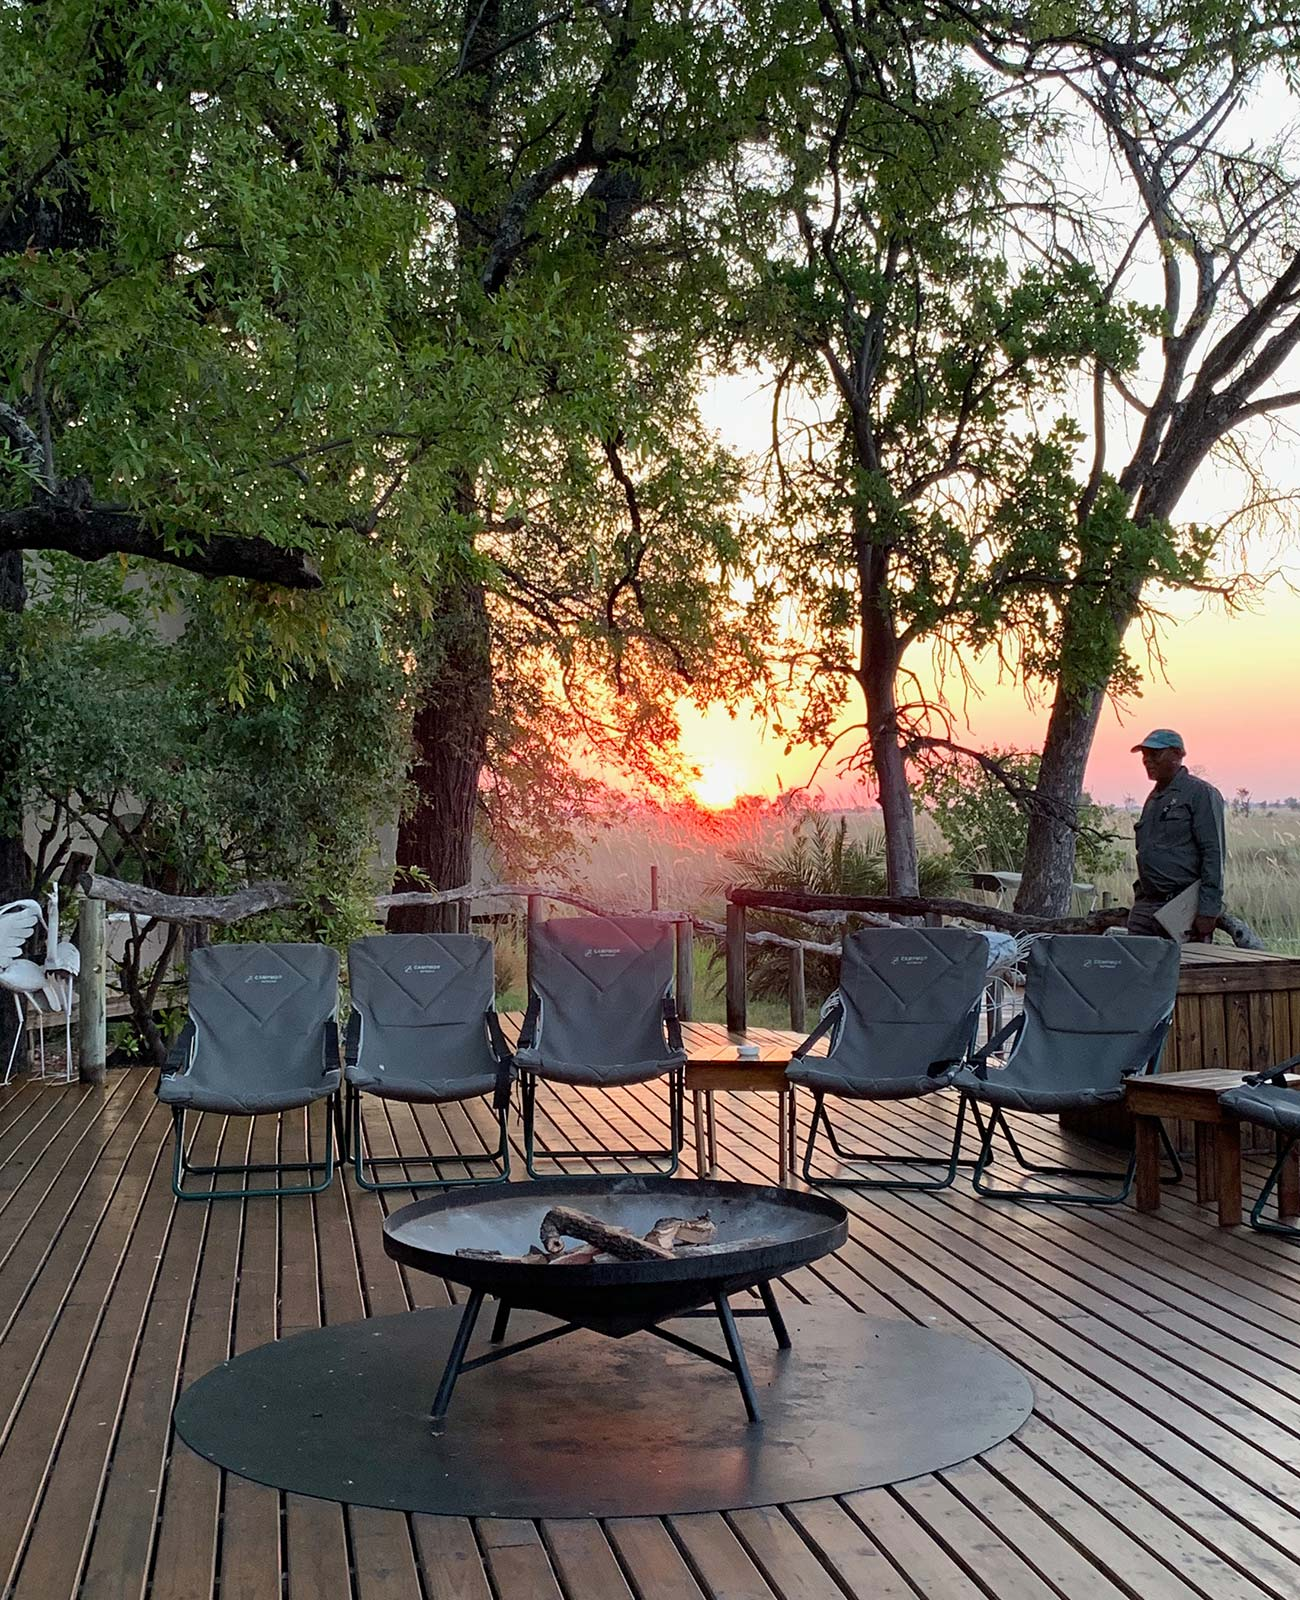 Sunset at game reserve in Botswana, Africa. Sh*ting next to an elephant